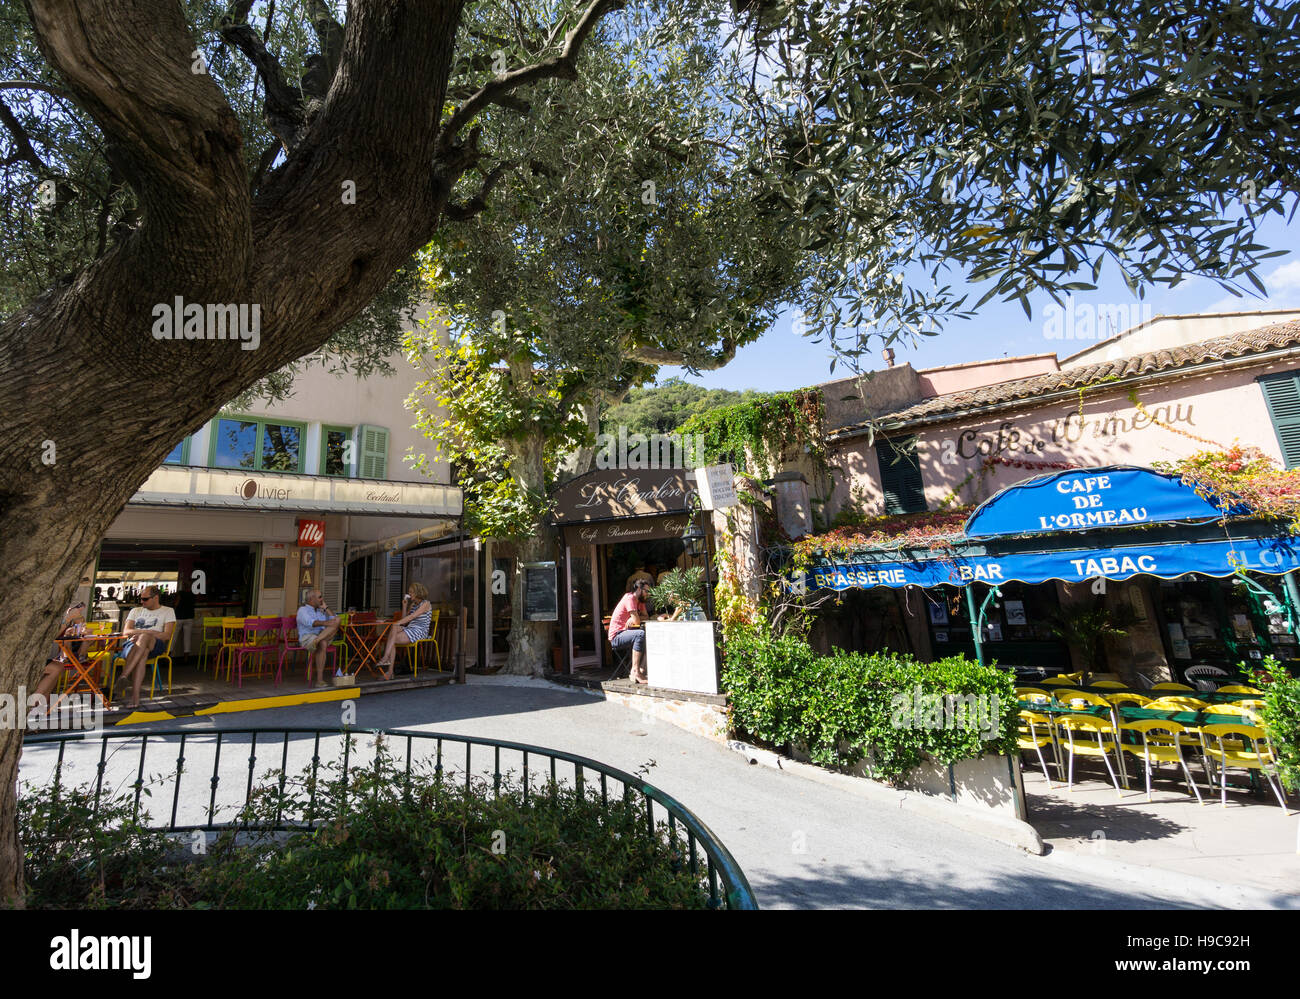 Diners outside cafés in the South of France village of ramatuelle, Var France with large tree and blue sky. - Stock Image